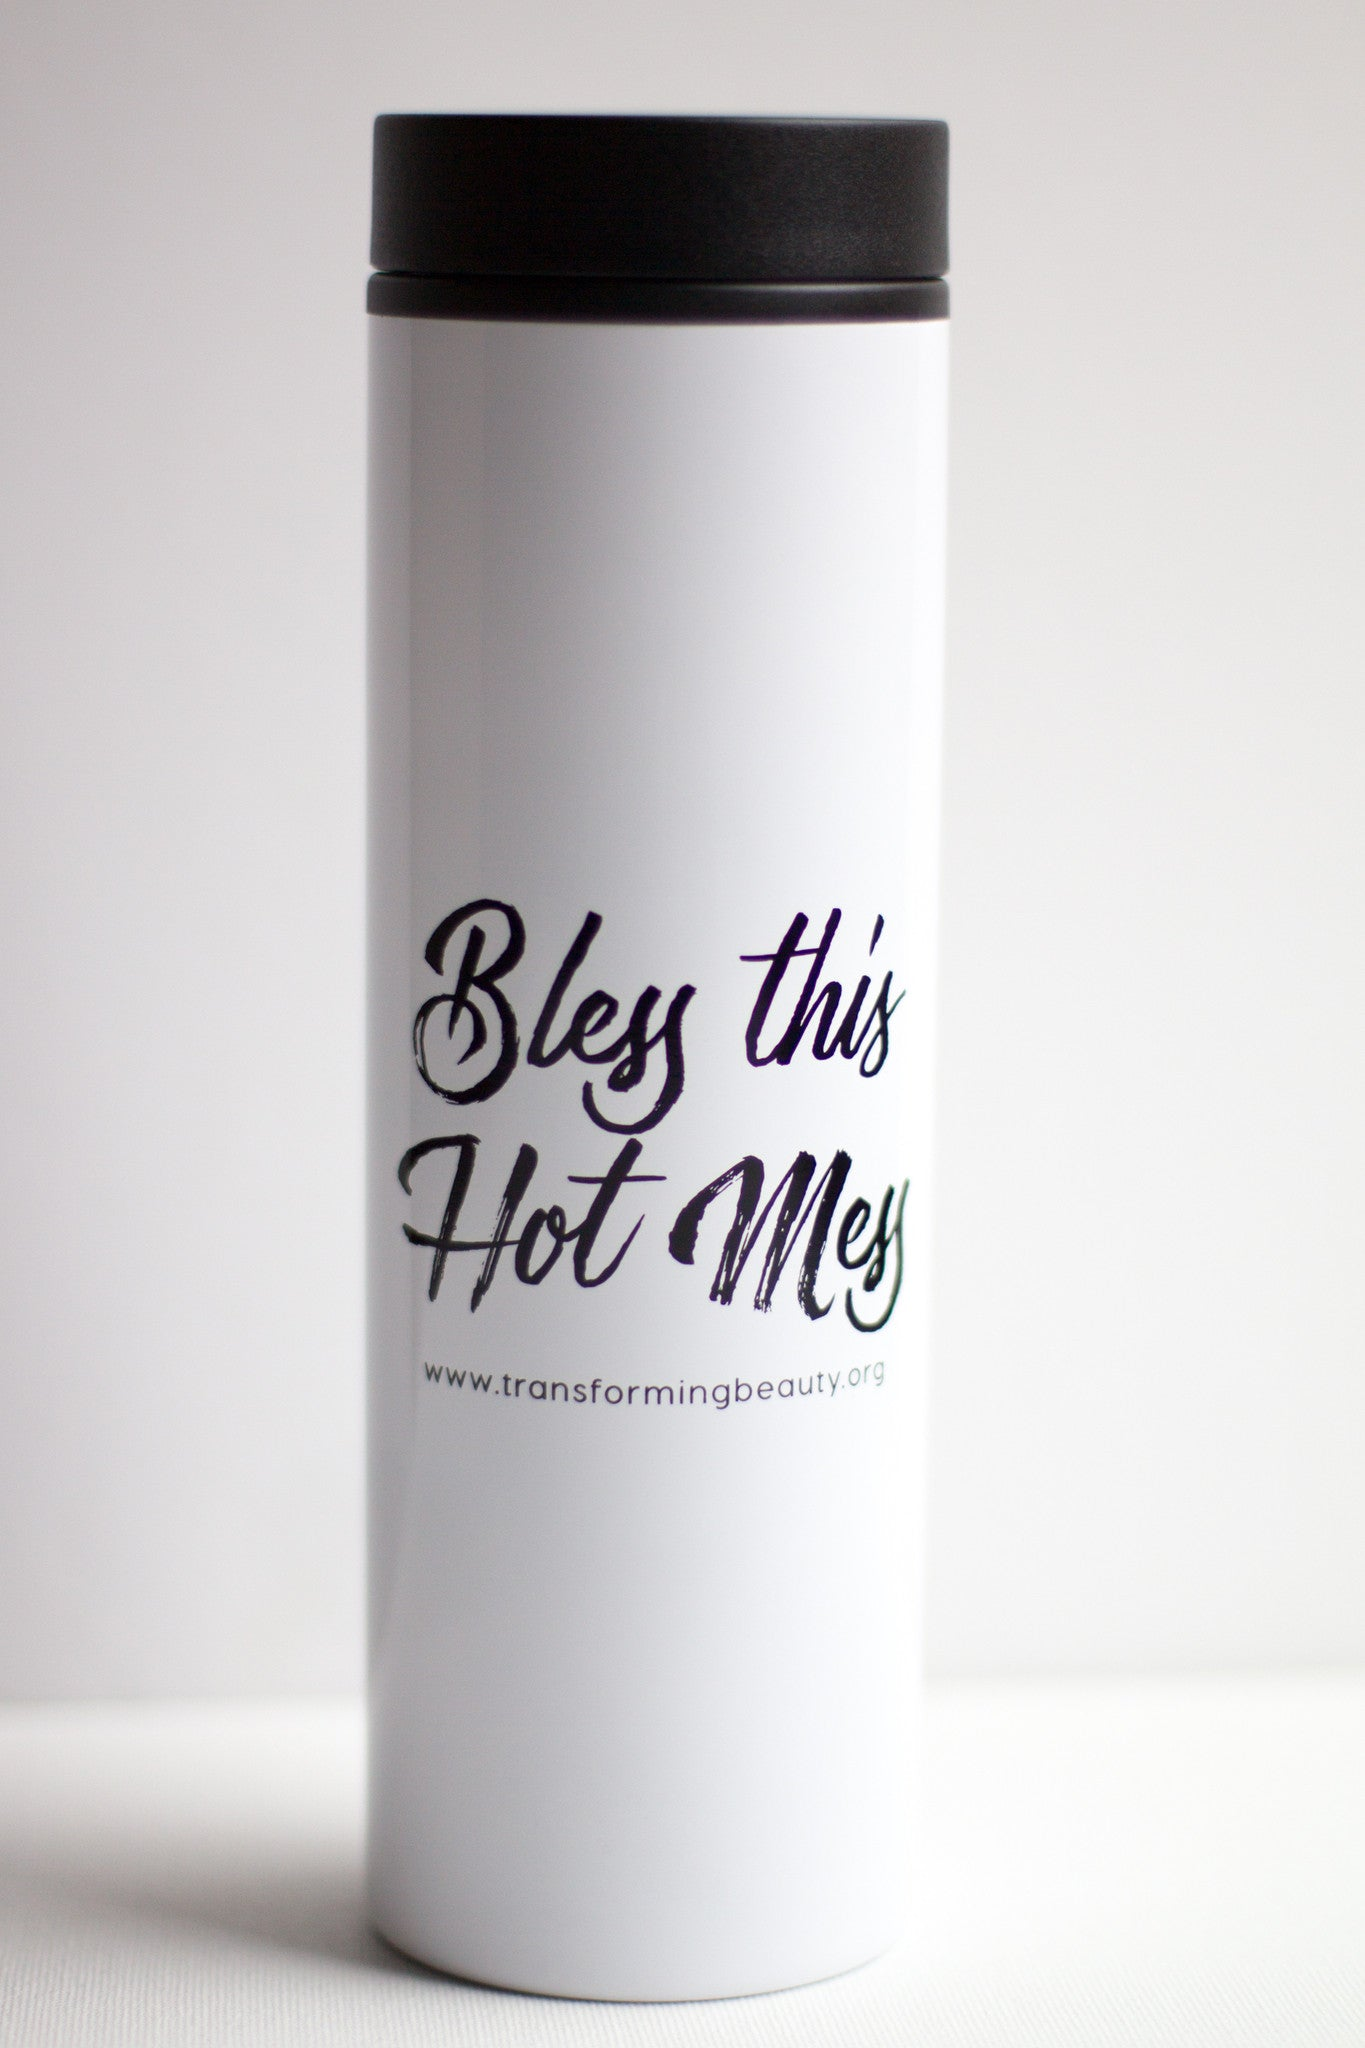 Bless This Hot Mess Travel Coffee Mug - As seen in Huffington Post